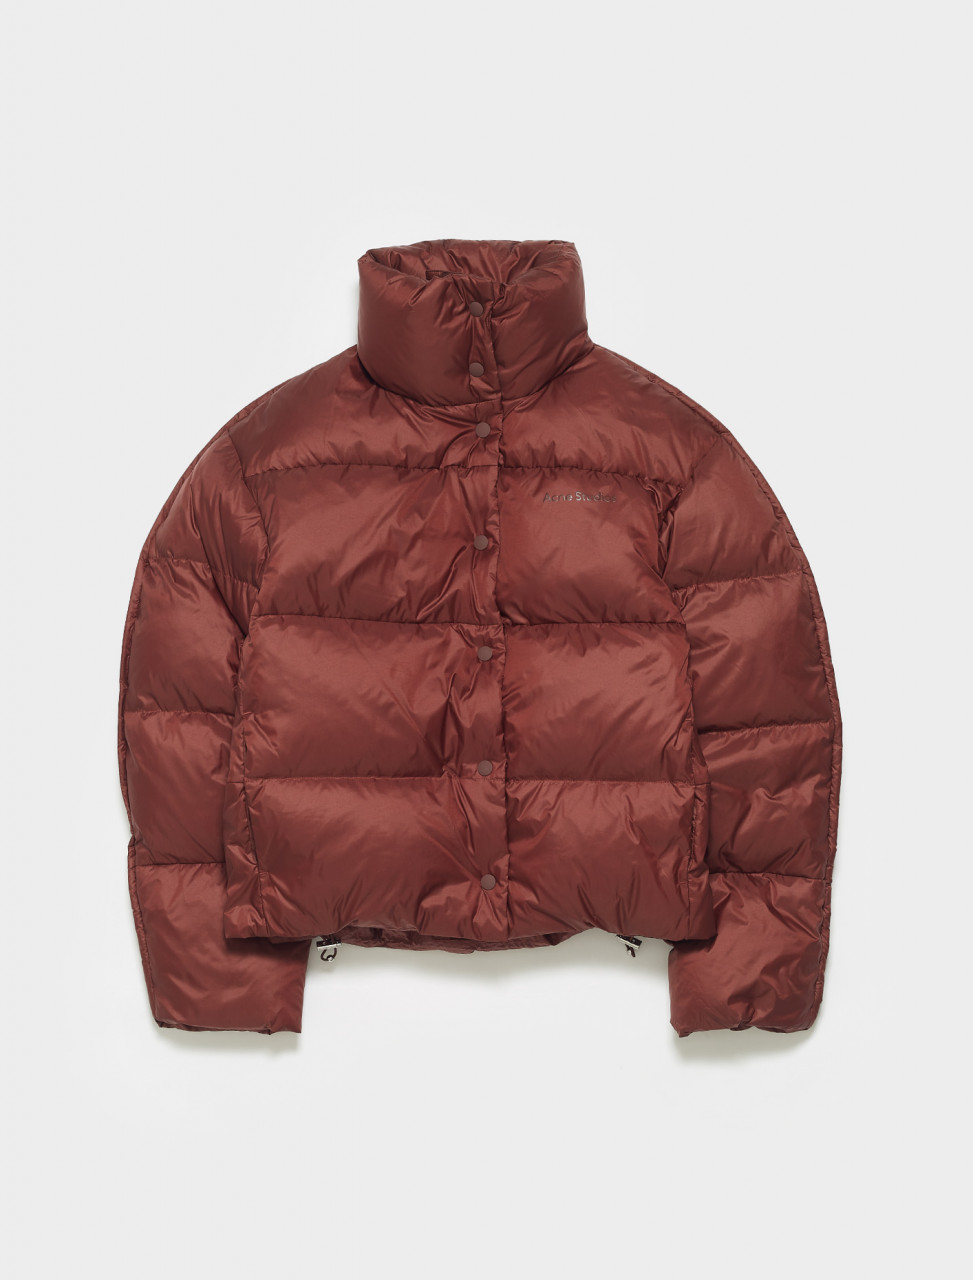 A90348-ACE ACNE STUDIOS ORLIN PUFFER JACKET IN MAROON RED